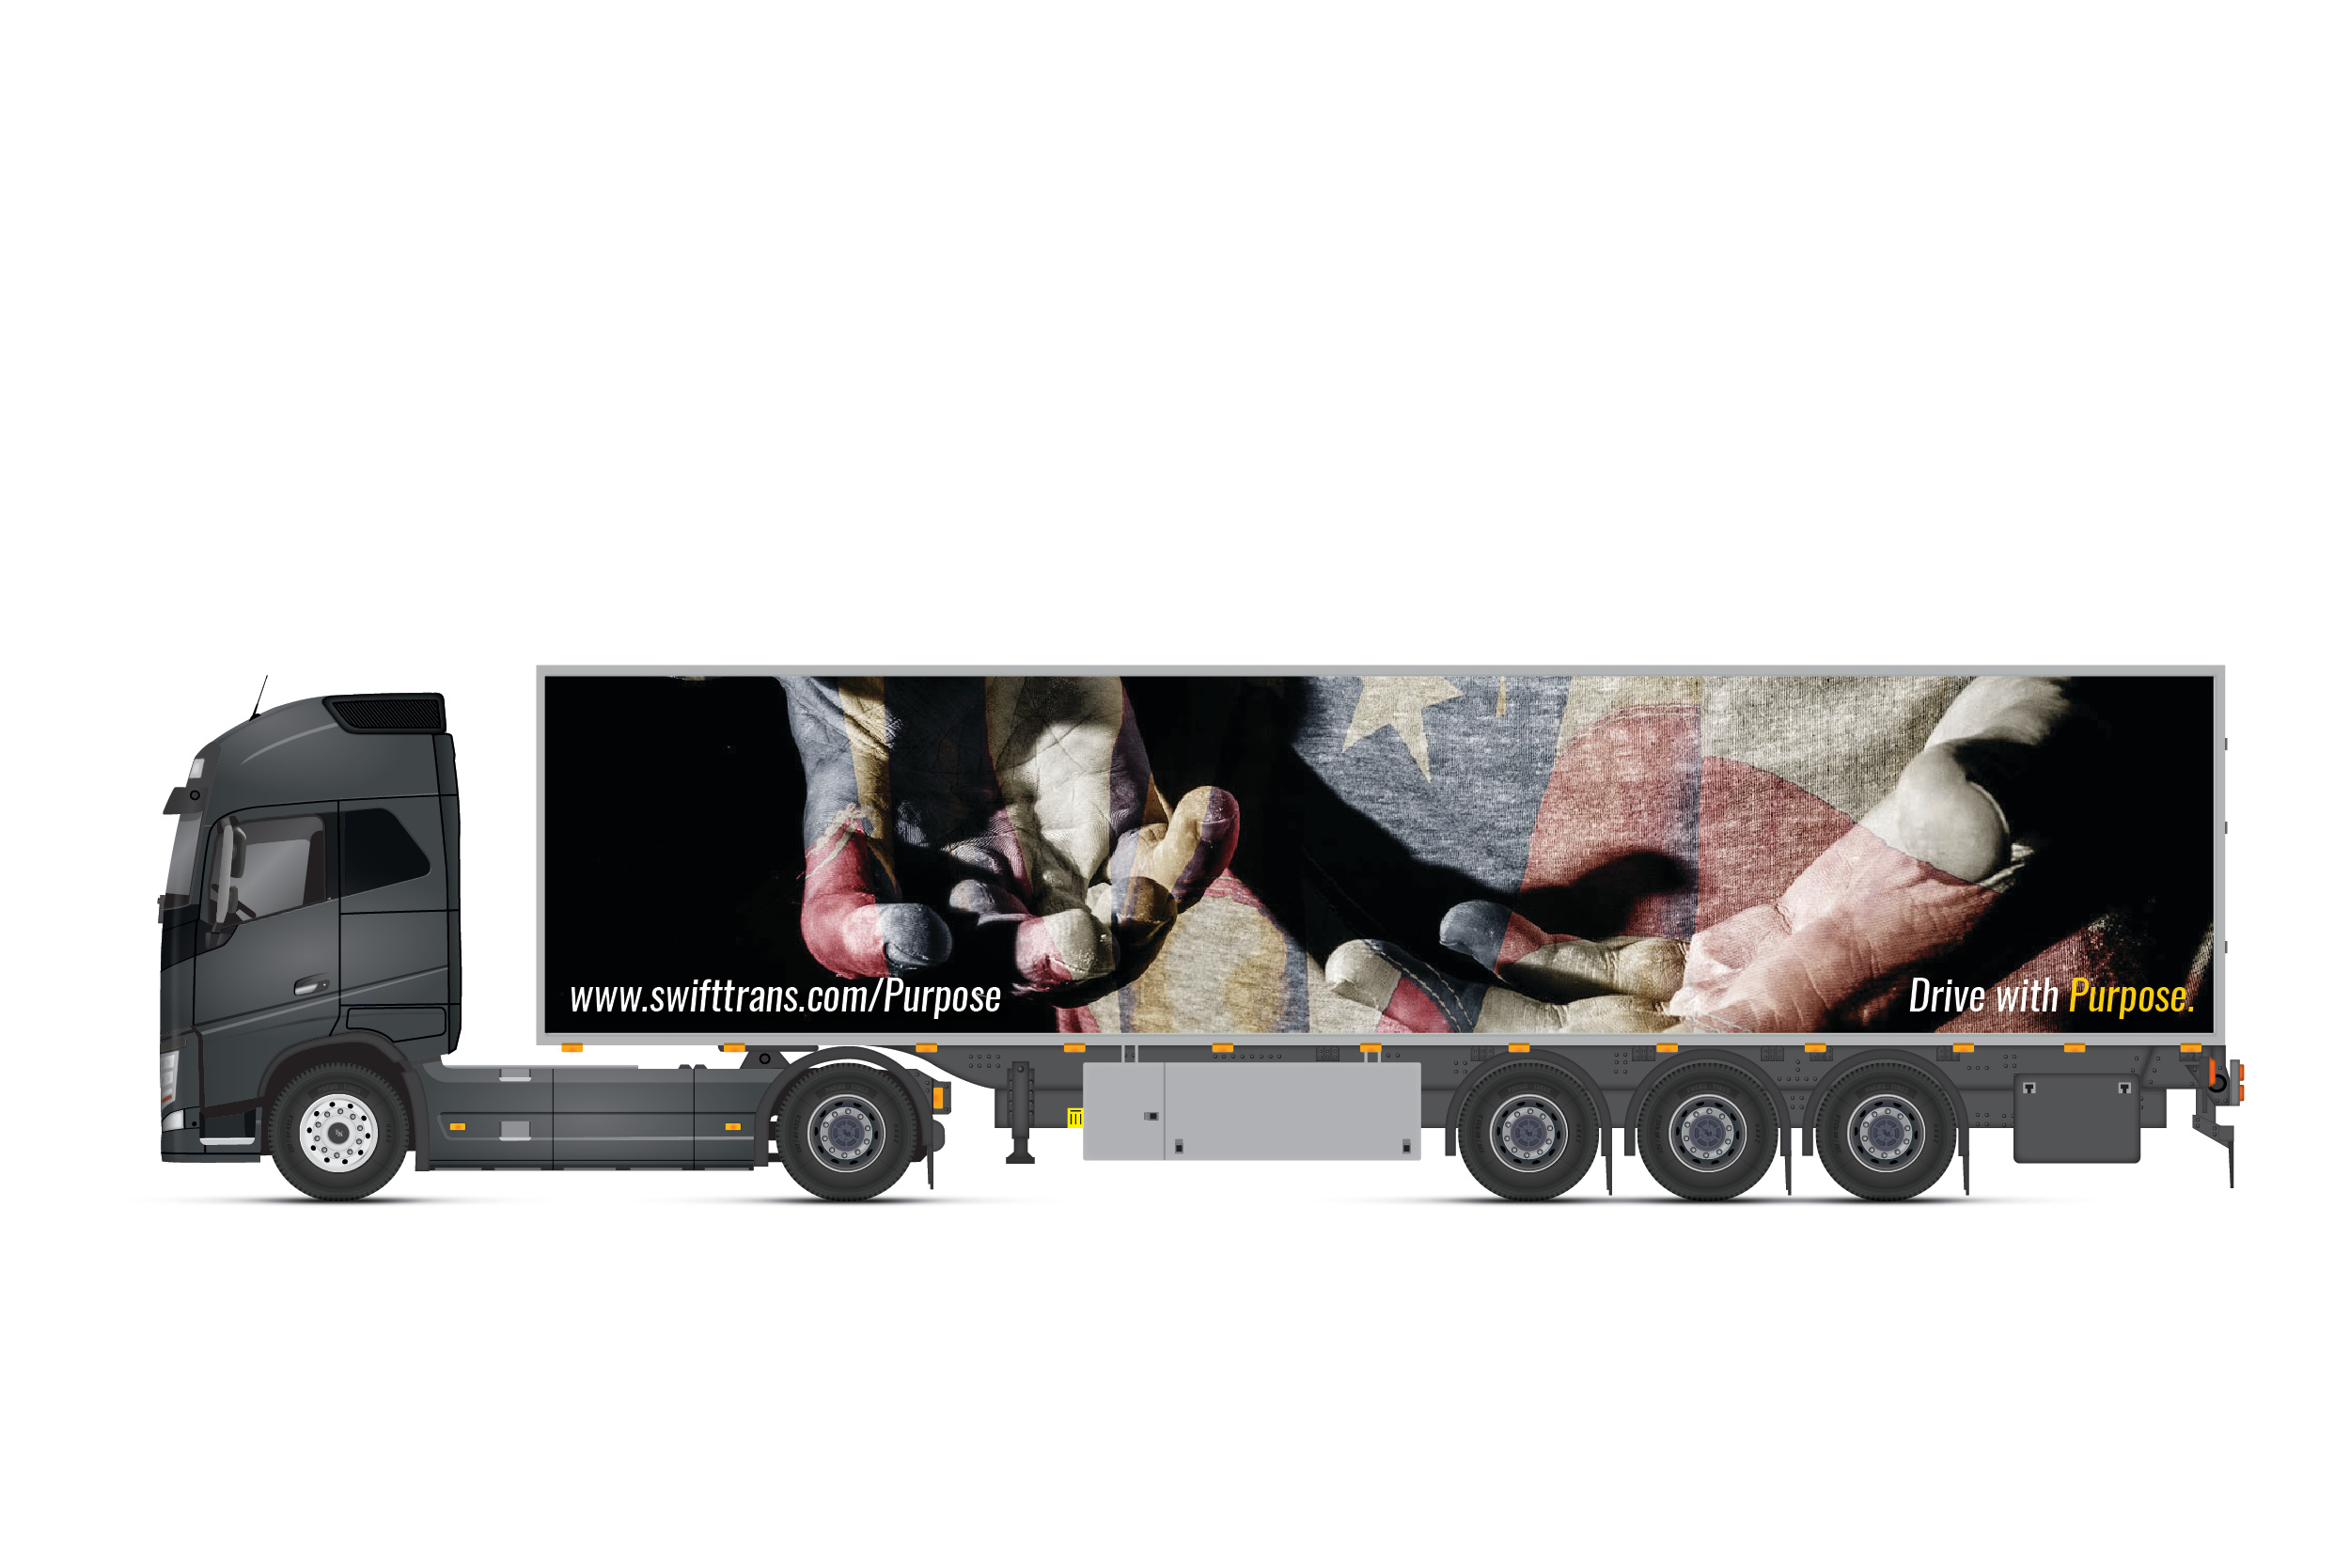 Truck Wrap - Purpose - Drive with Purpose-02